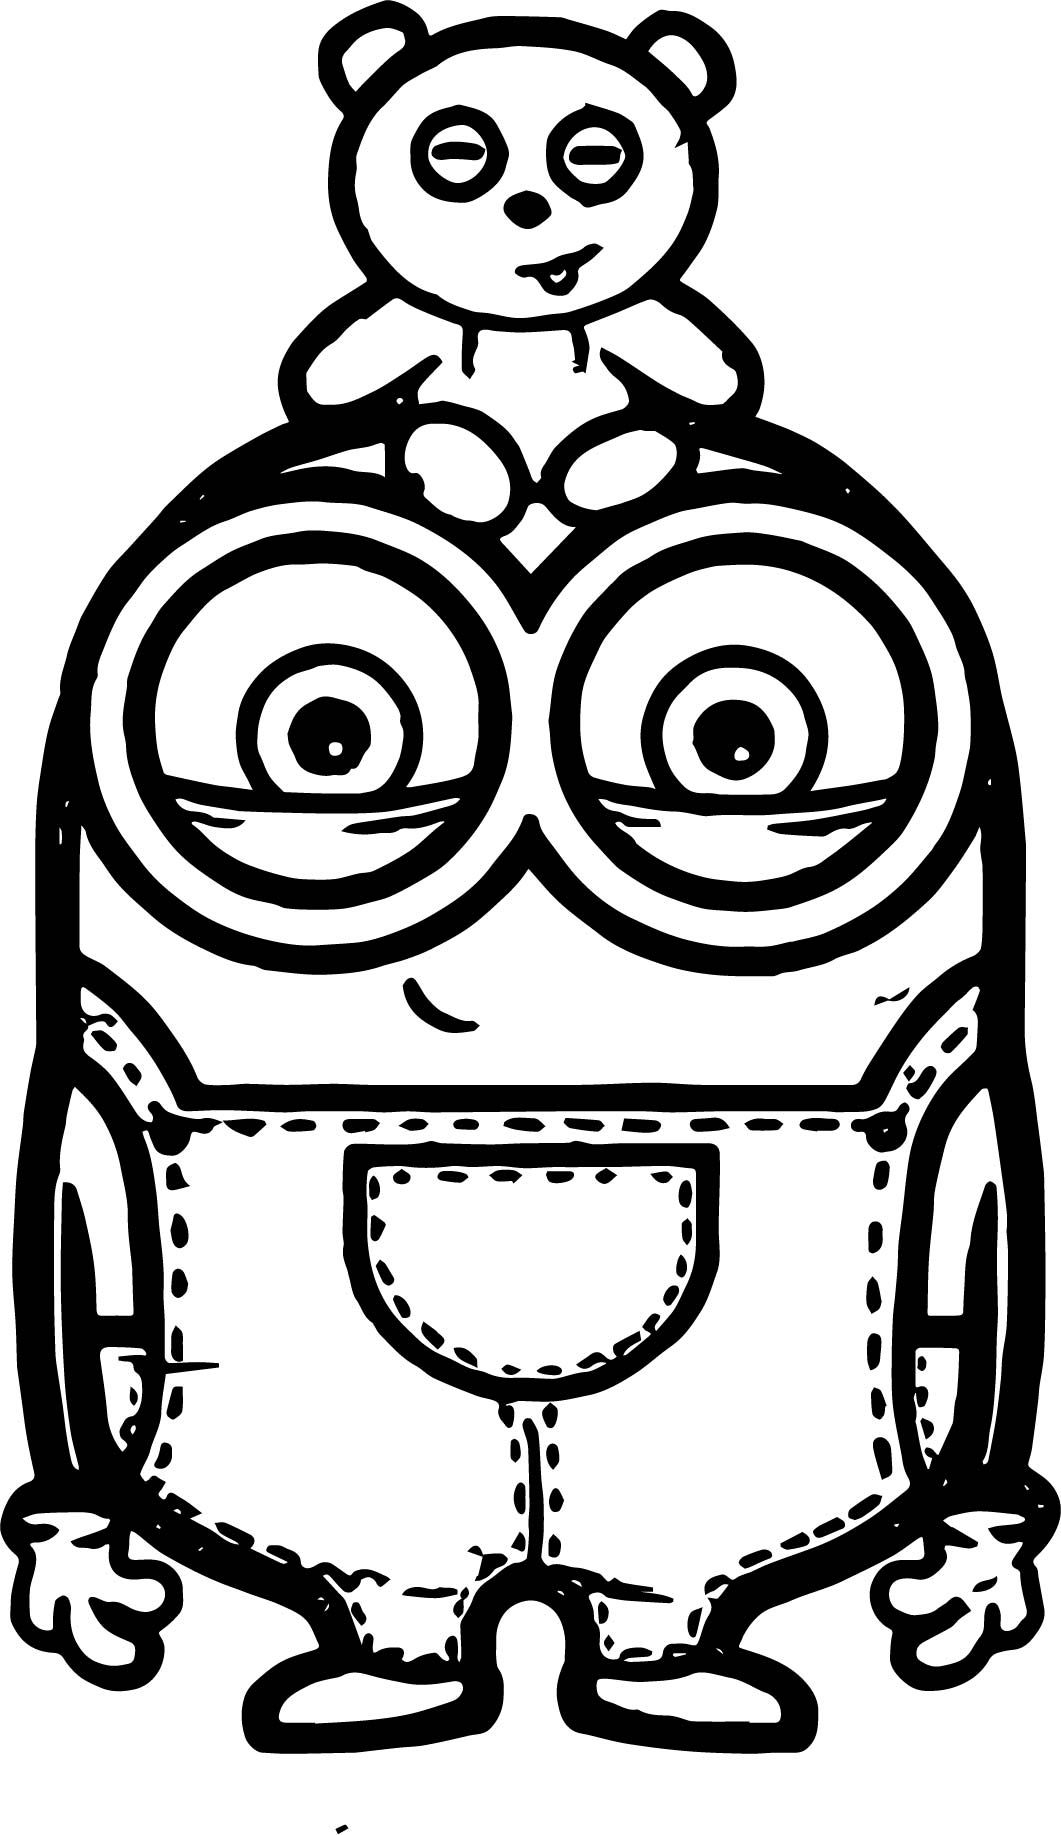 Minion Coloring Pages Bob  Download 15j - To print for your project